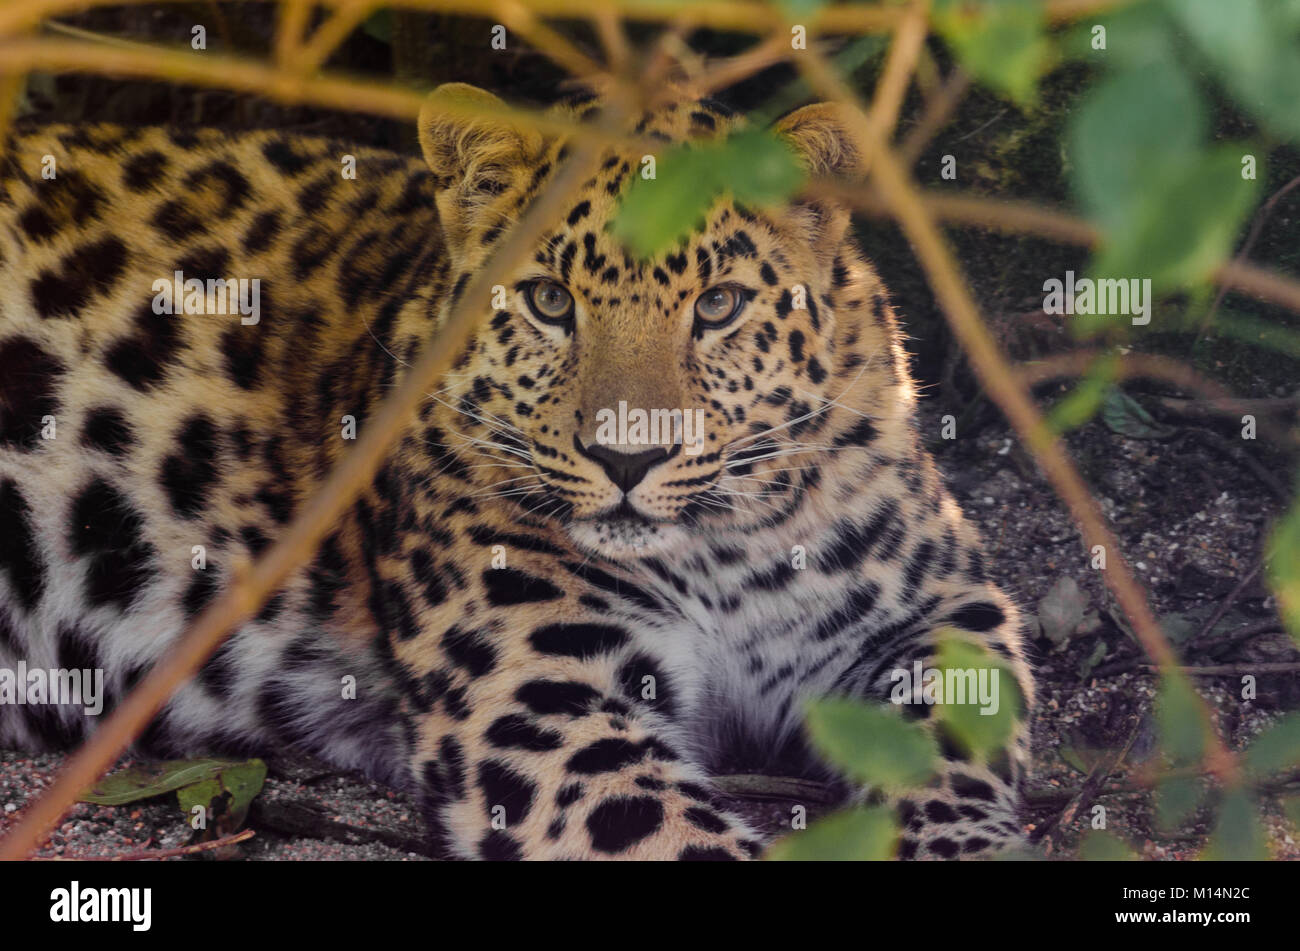 Amur leopard prowling in the undergrowth - Stock Image